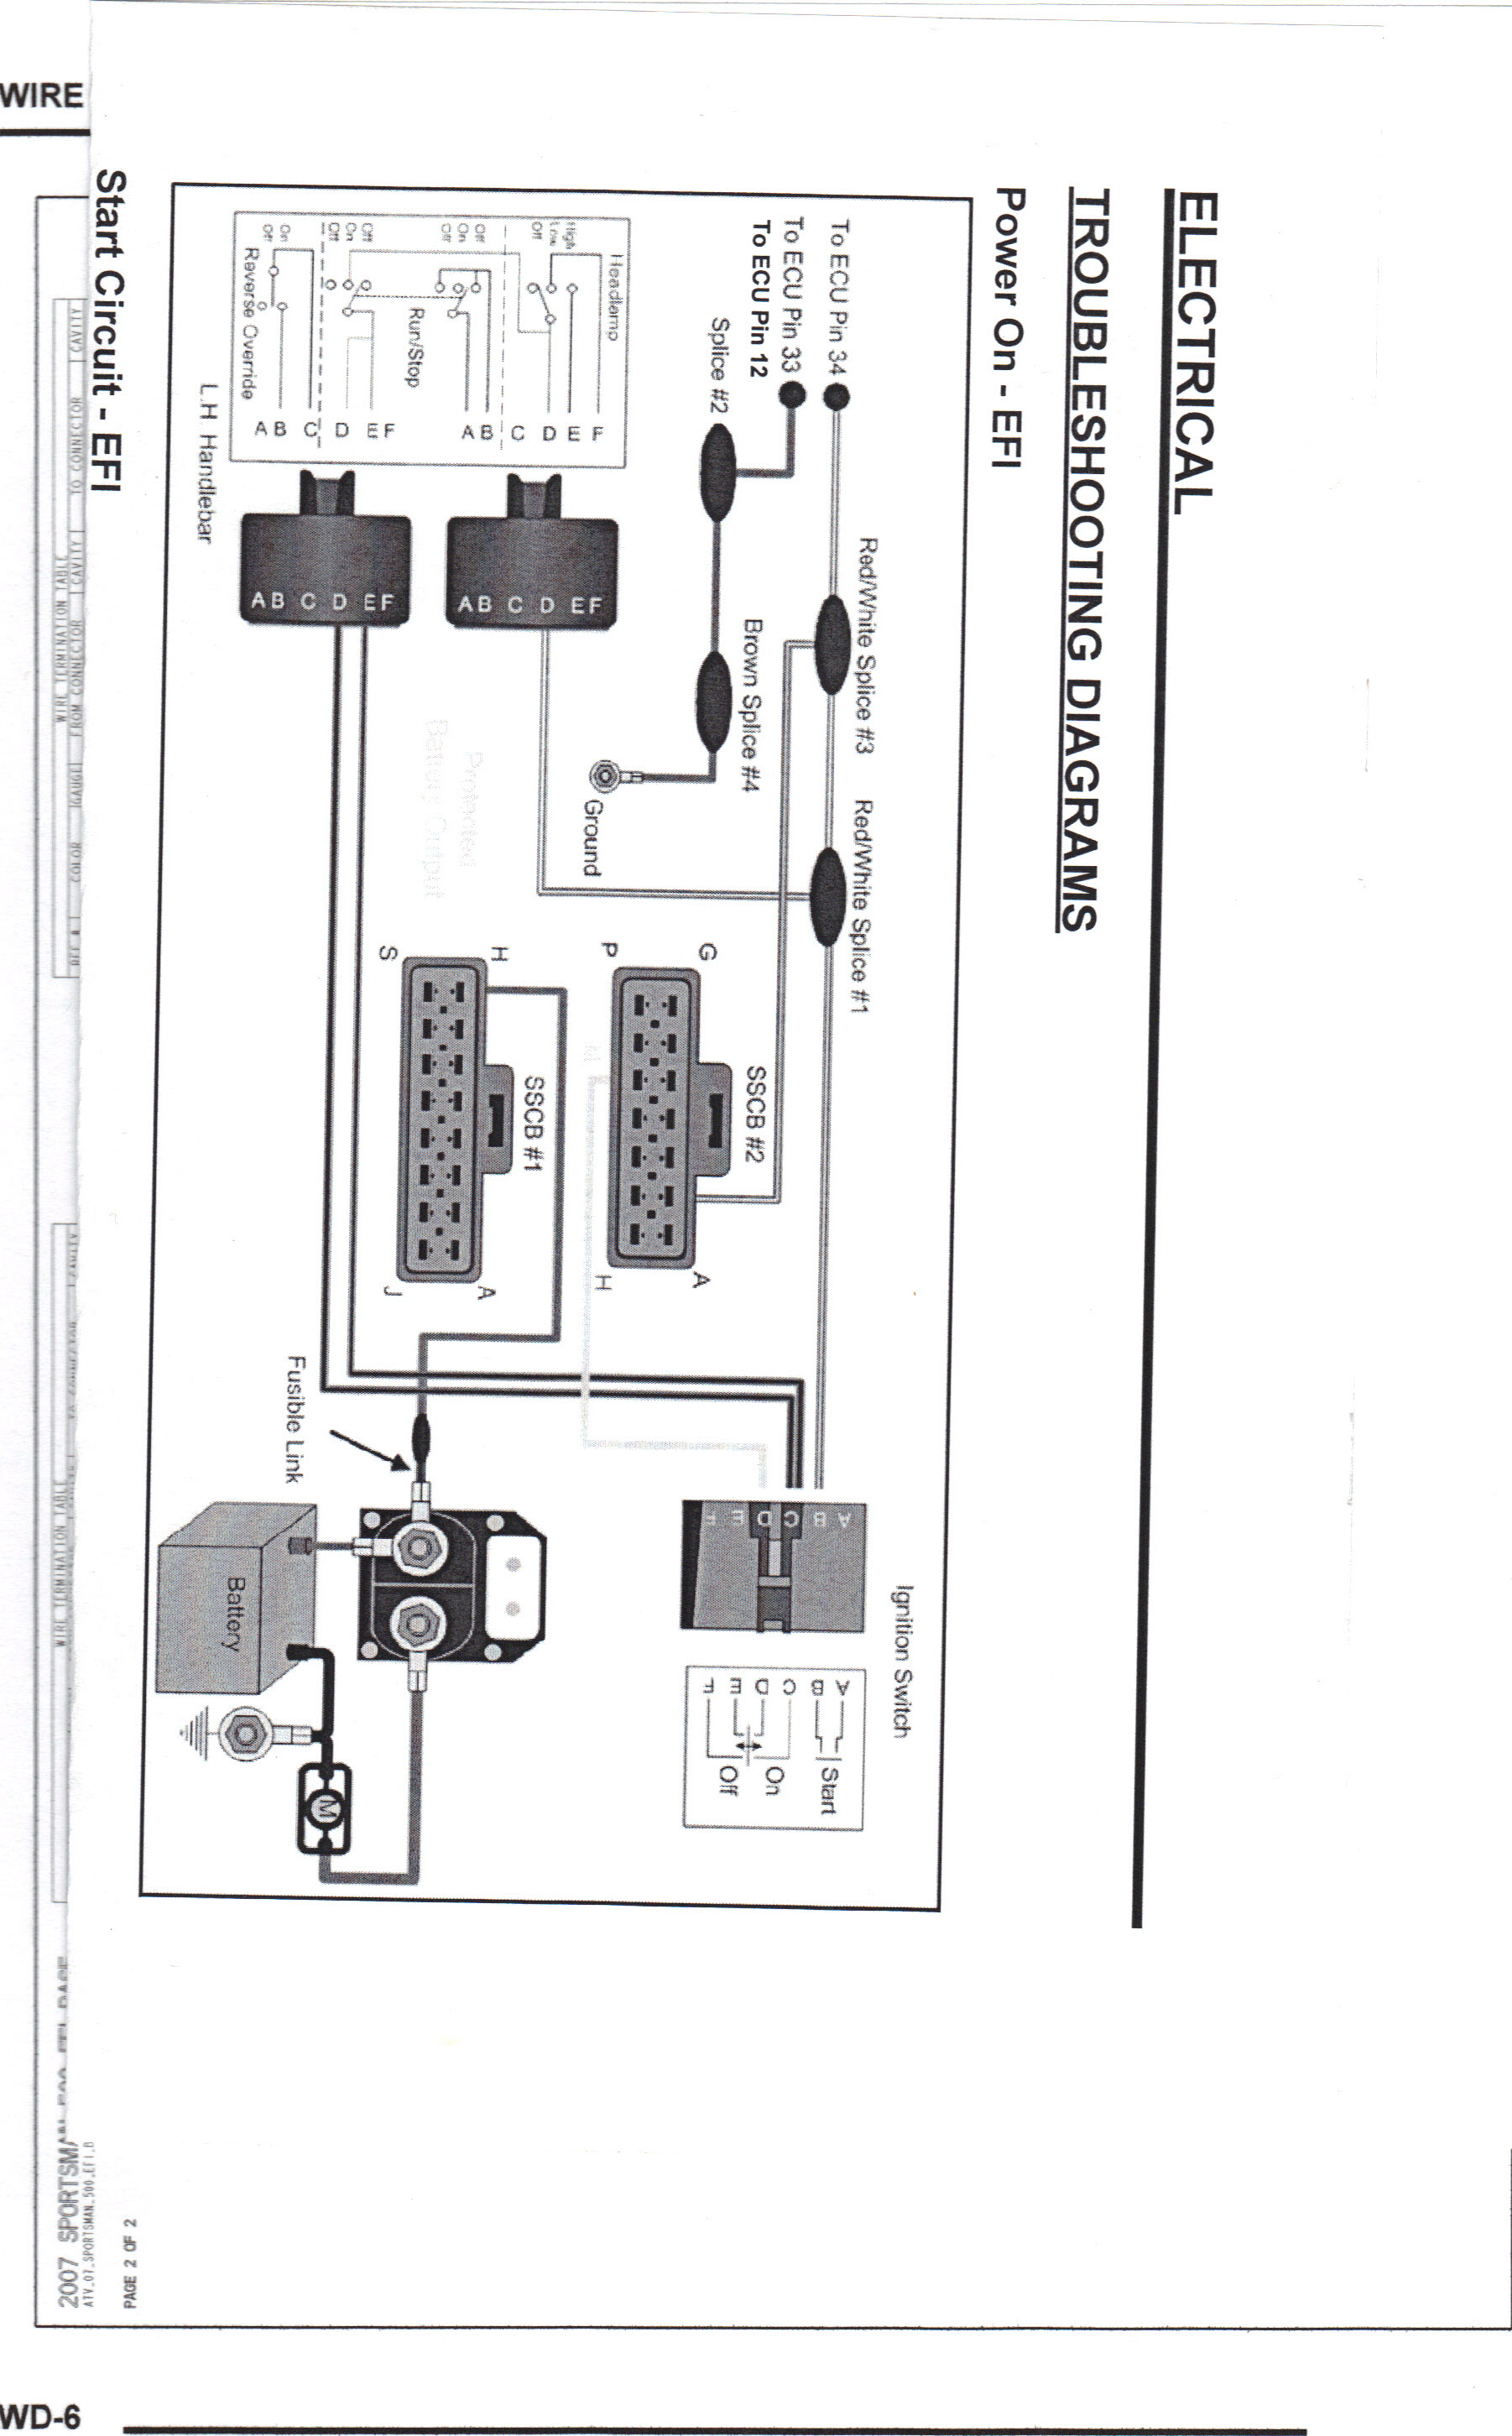 2005 polaris sportsman 500 ho wiring diagram schematic diagrams rh  ogmconsulting co Polaris Sportsman Wiring Schematic